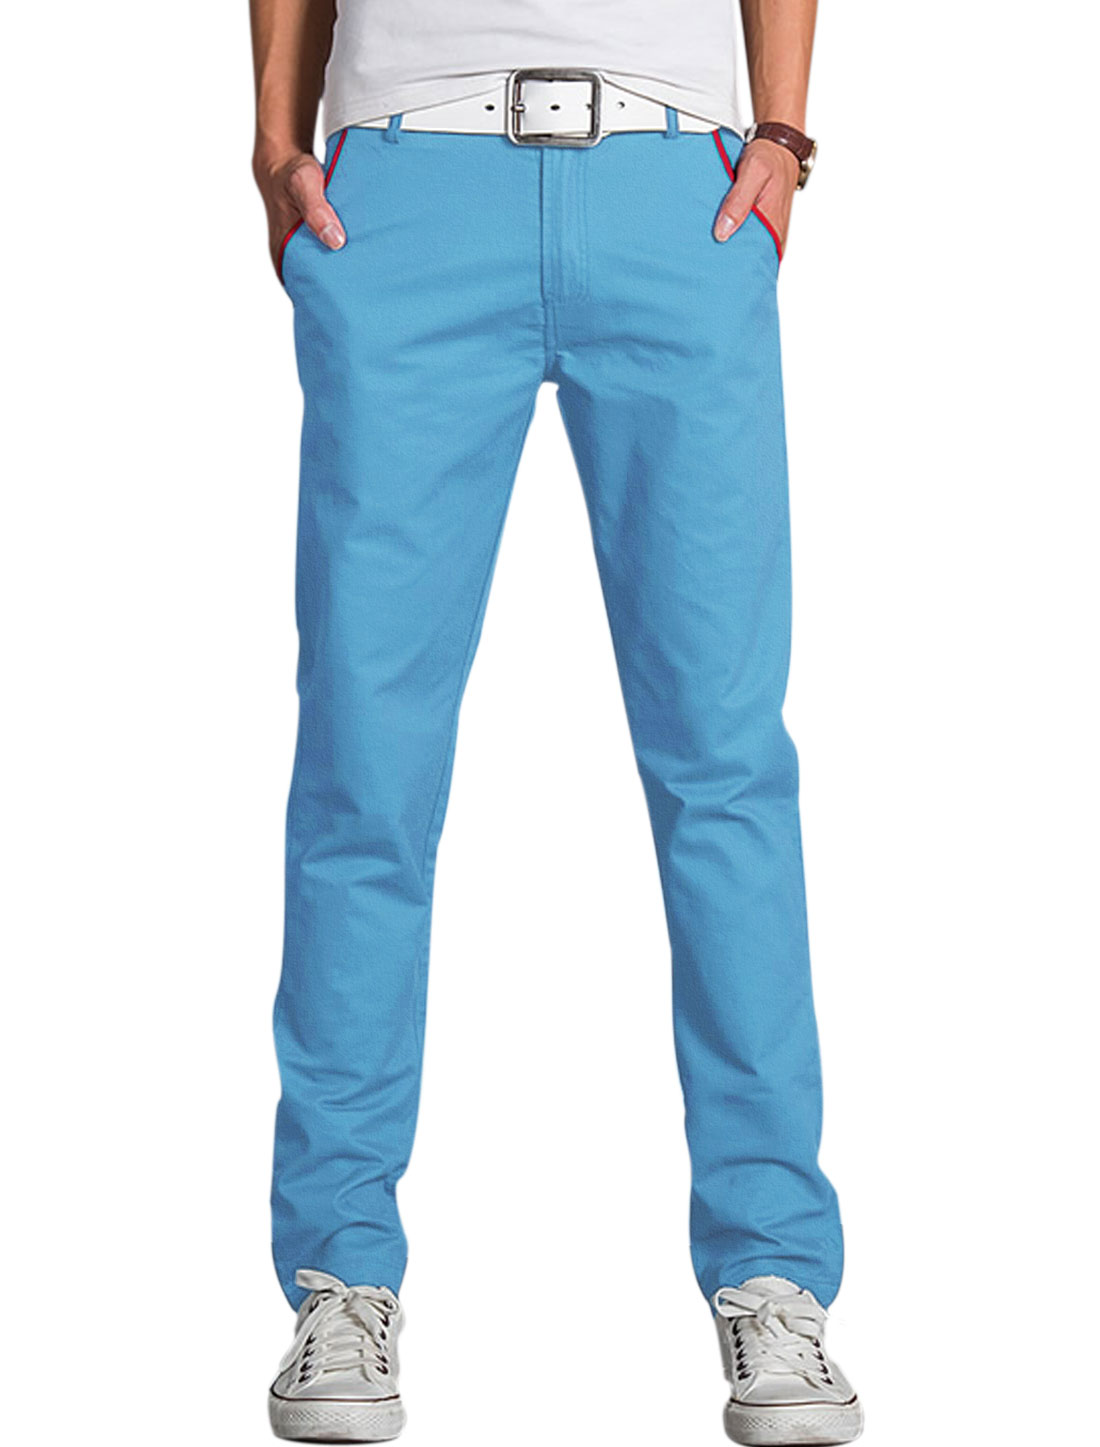 Men Two Pockets Front Slim Fit Casual Trouser Light Blue W36